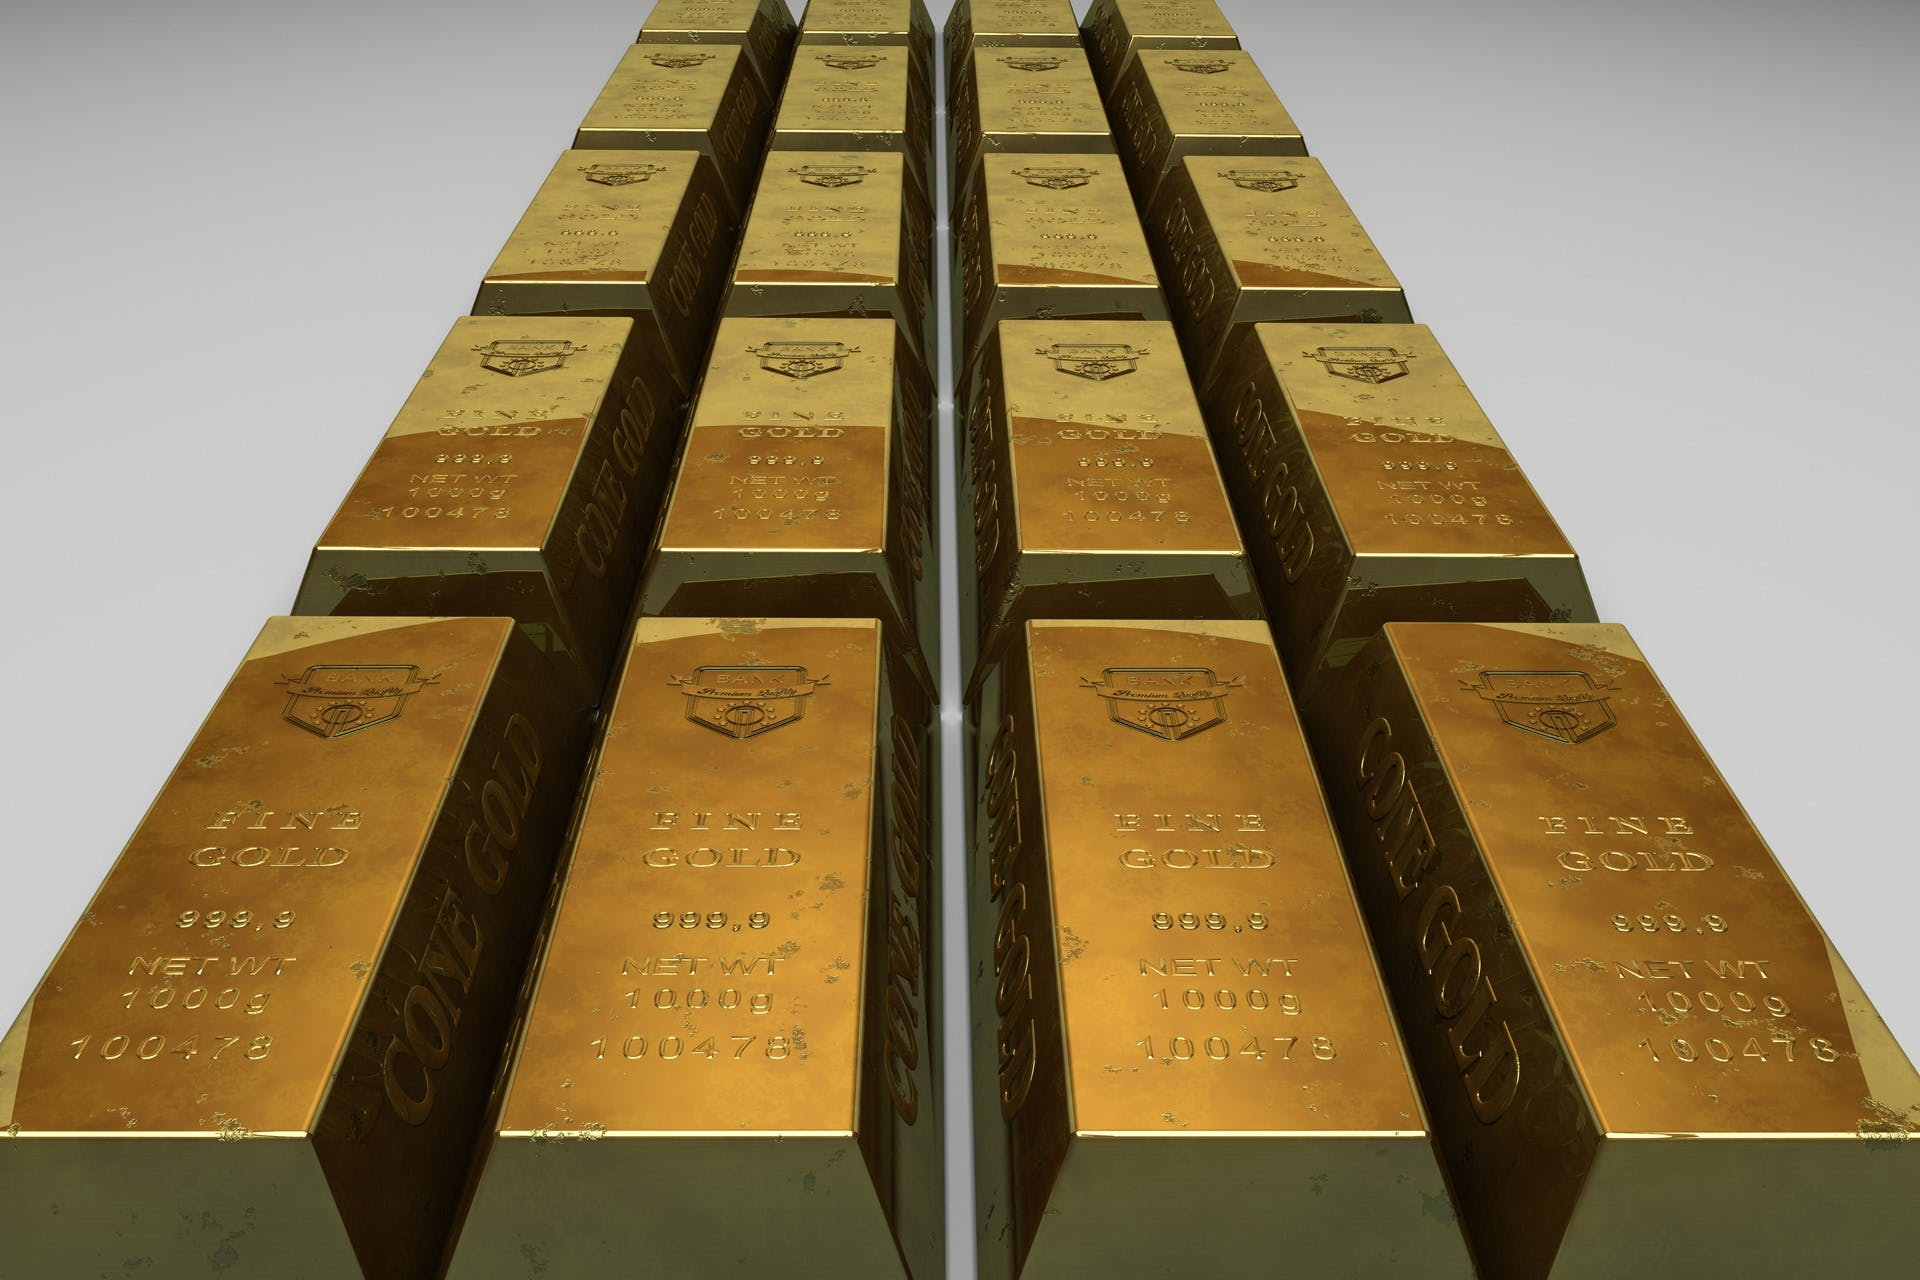 Shallow Focus Photo of Gold Bars